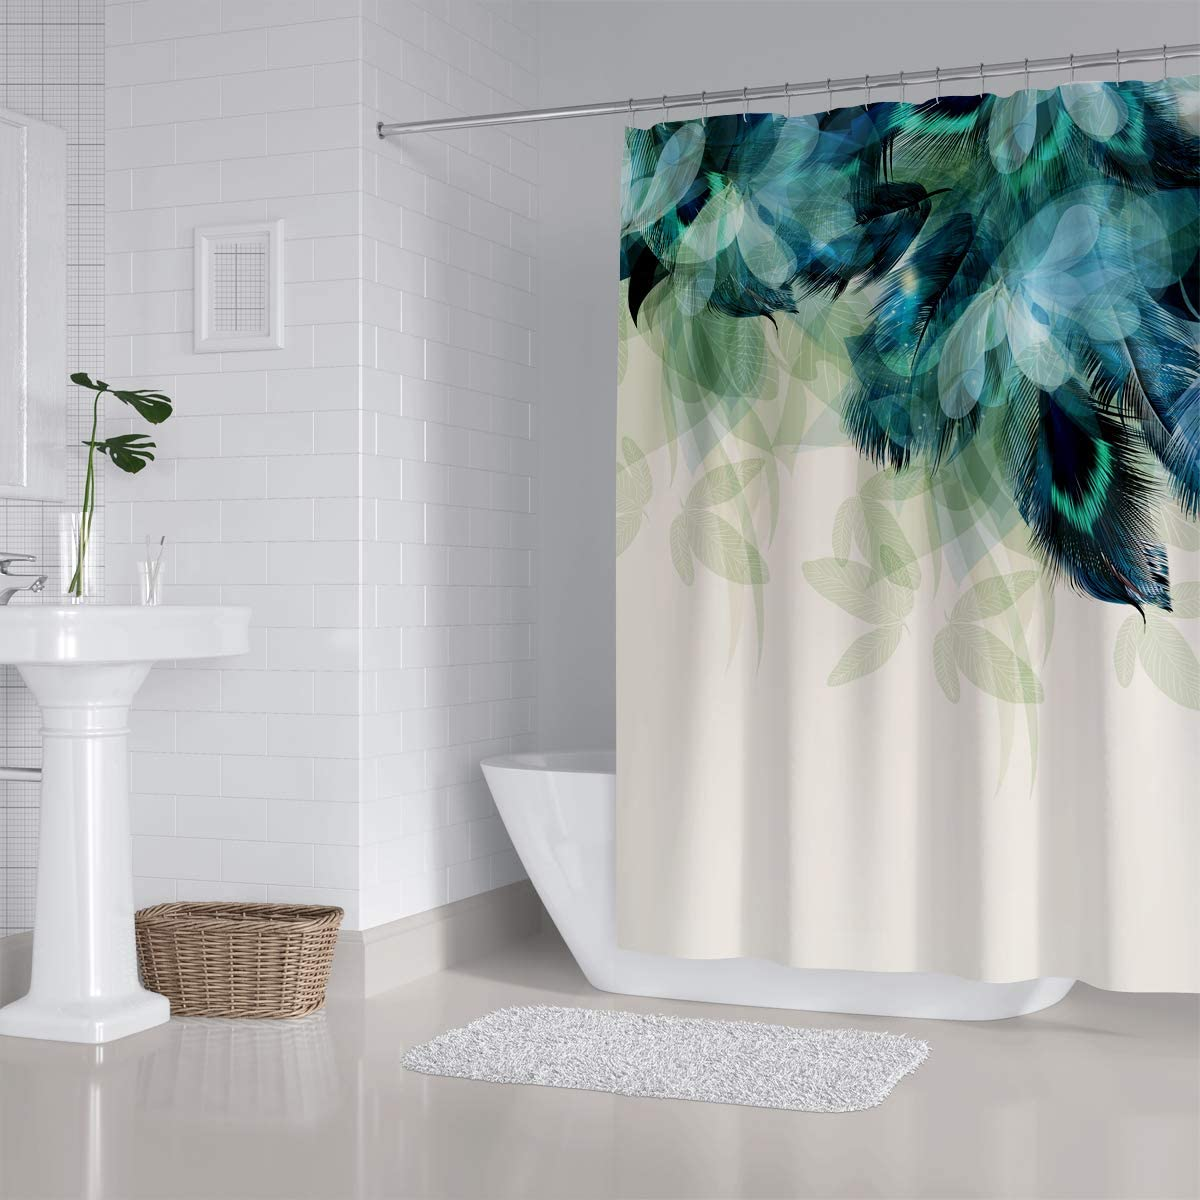 ZXMBF Watercolor Peacock Feather Shower Curtain Teal Blue Turquoise Floral Green Leaf Home Décor Waterproof